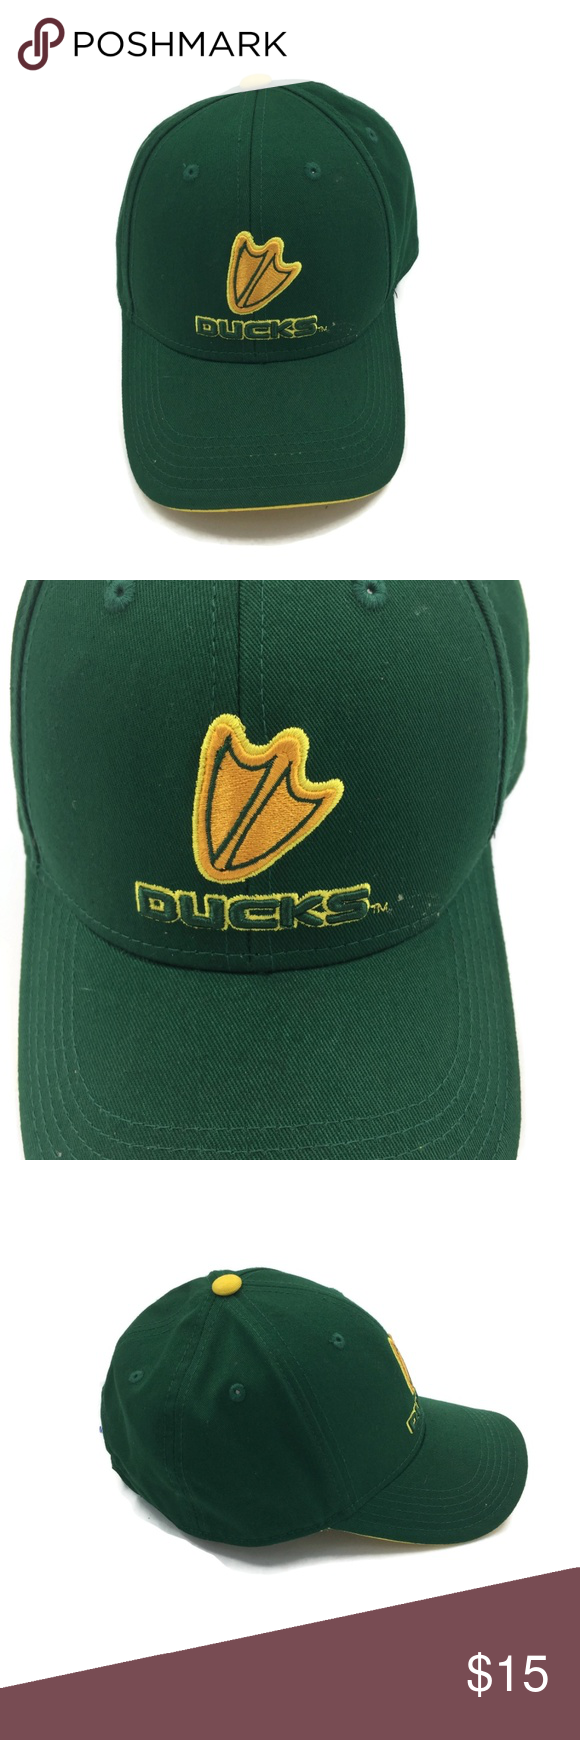 Oregon Ducks Youth Baseball Cap Hat Oregon Fashion Youth Baseball Caps Hats